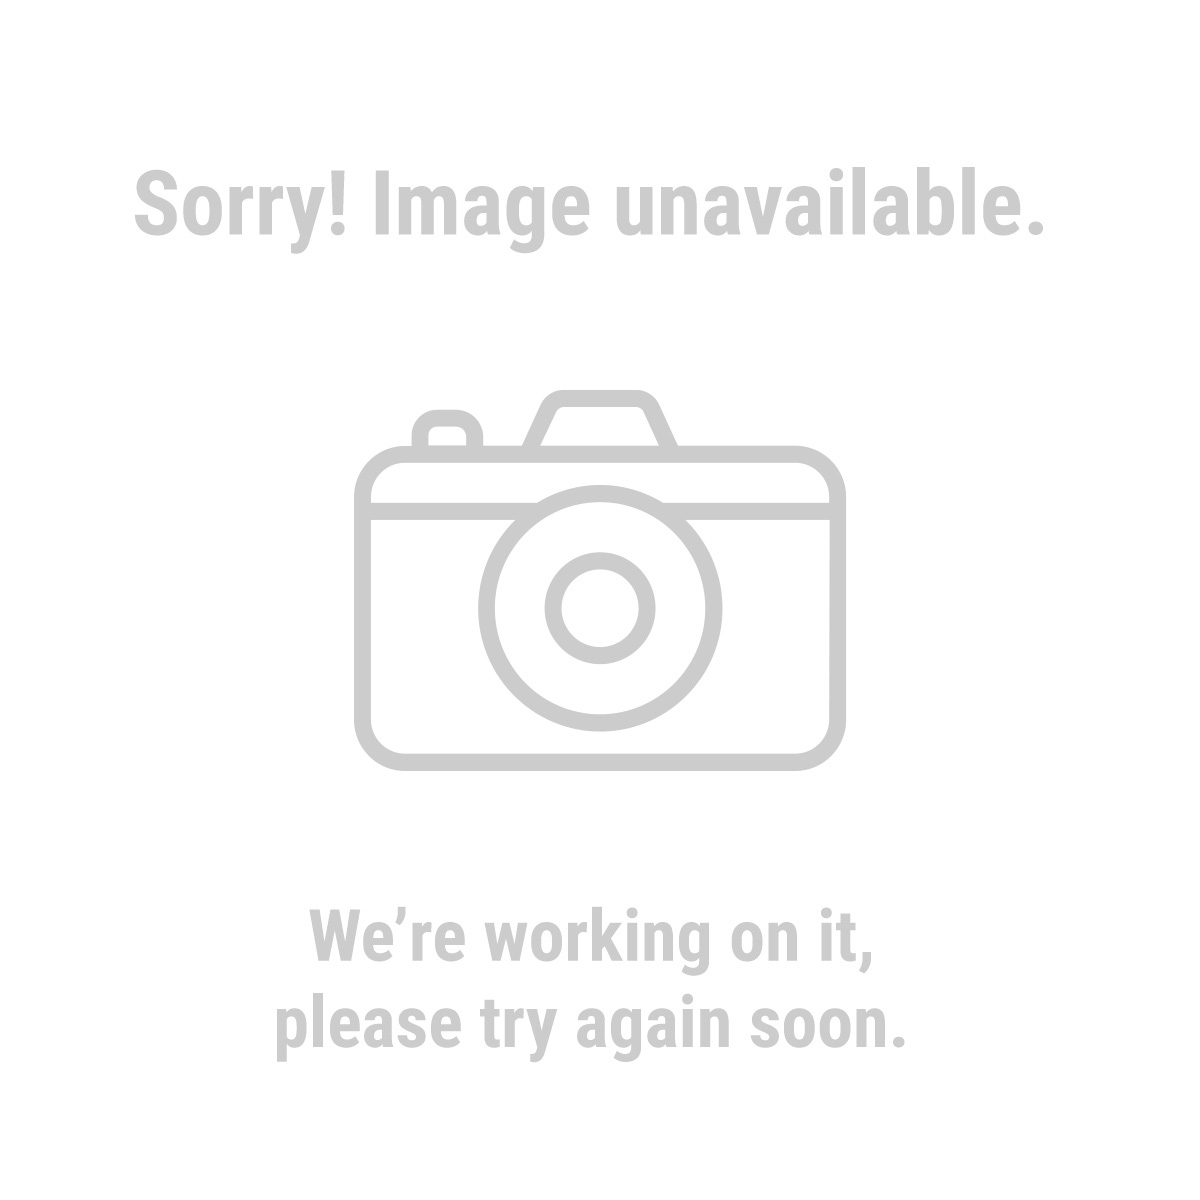 "Haul Master Automotive 42708 870 Lb. Capacity 40"" x 49"" Heavy Duty Utility Trailer with 8"" Wheels and Tires"